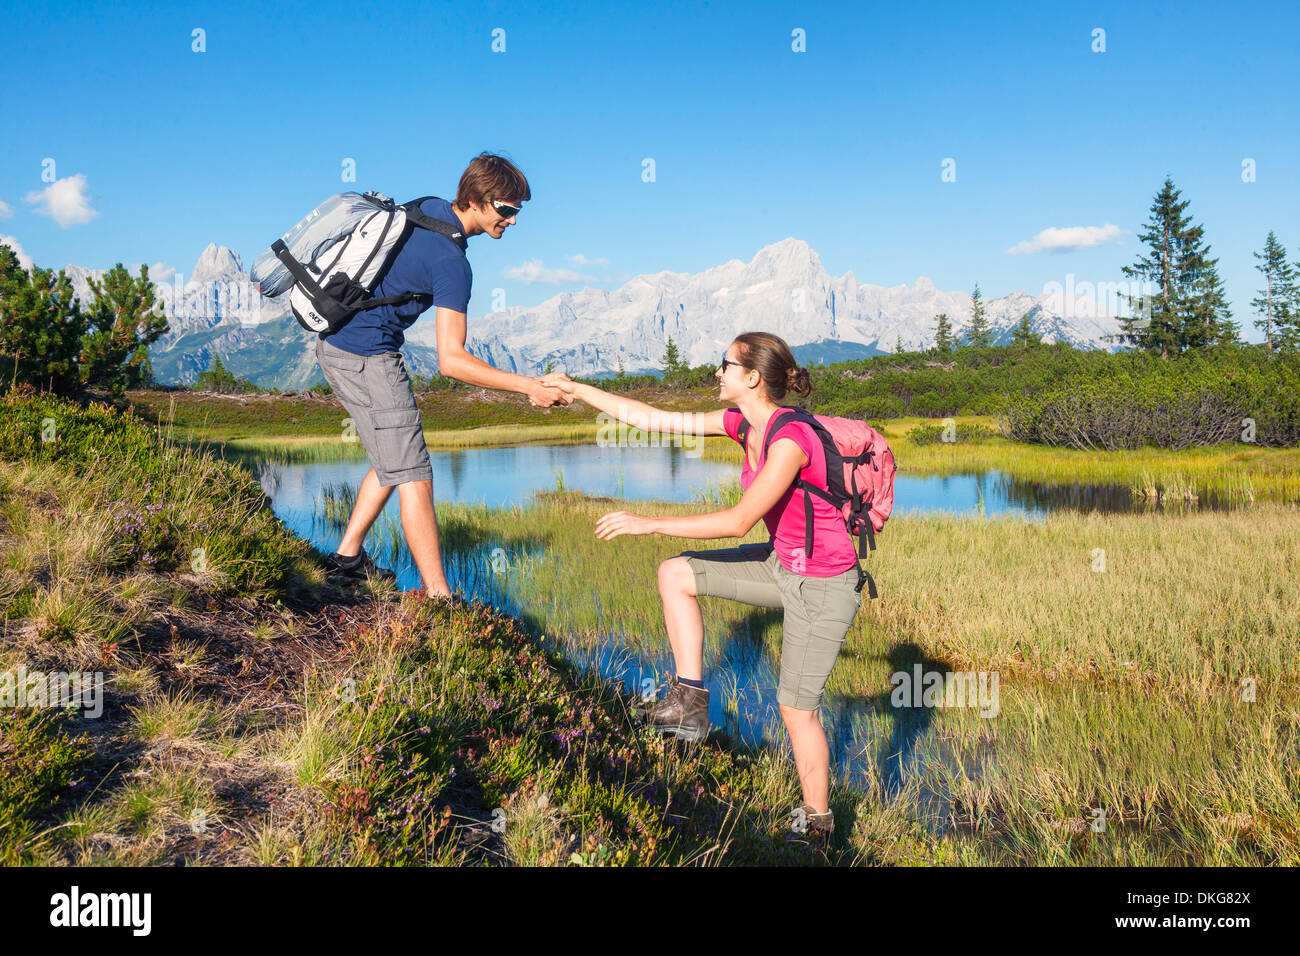 Young couple hiking, Bischofsmuetze, Gosaukamm und Dachstein, Salzburger Land, Austria, Europe - Stock Image